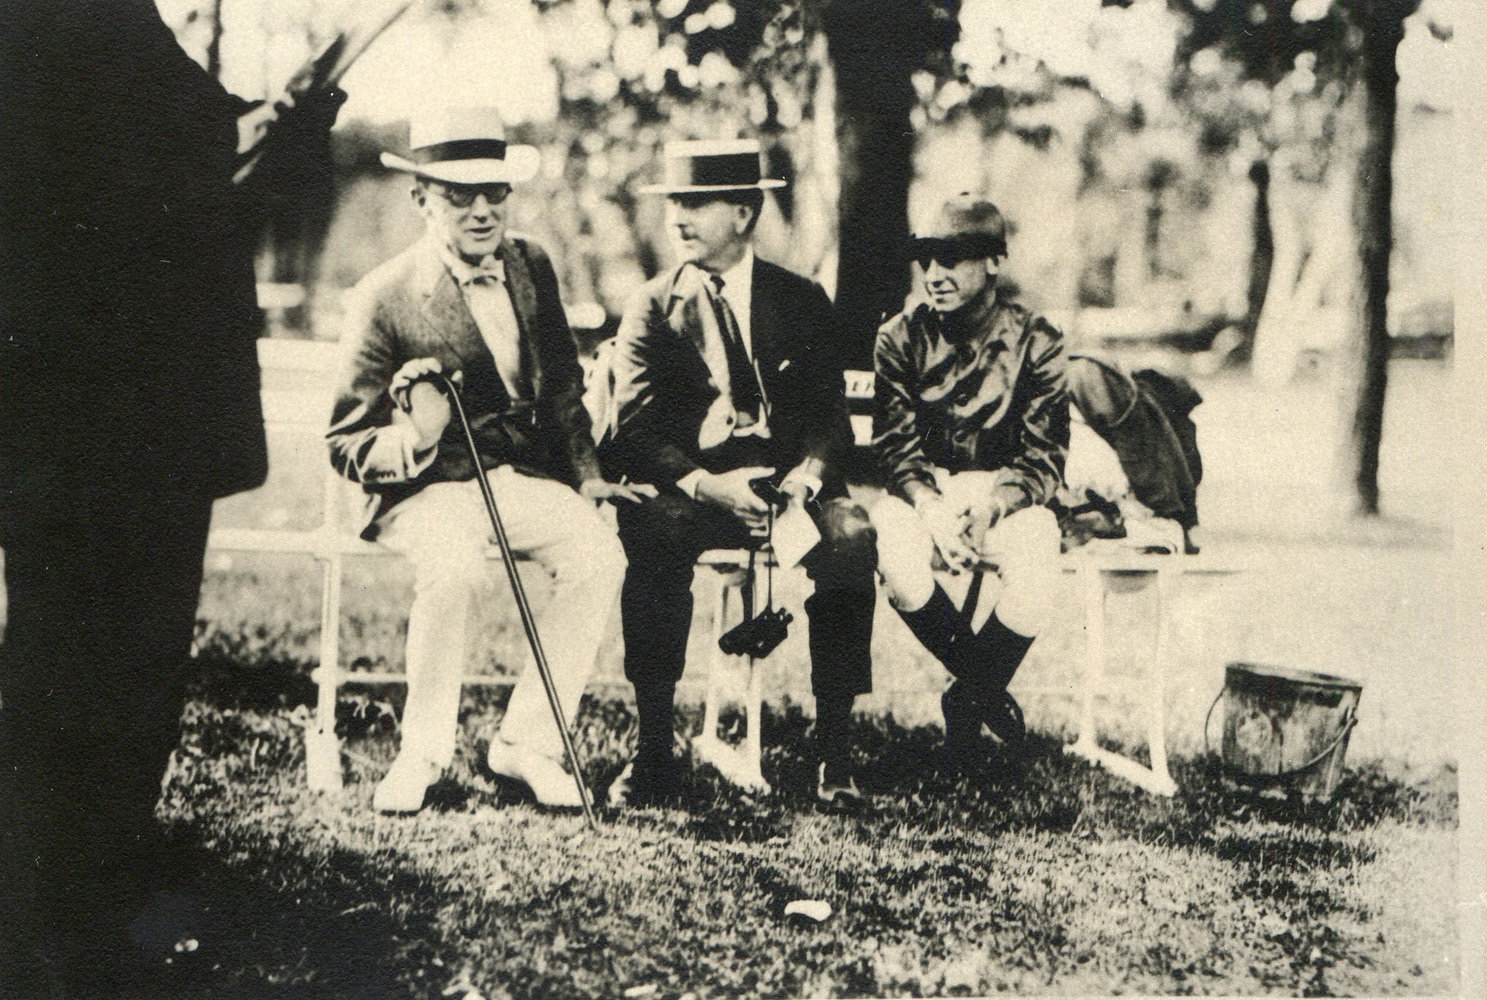 Trainer Tom Healey (center) and jockey Mack Garner share a bench with another unidentified man at Saratoga in 1920 (Museum Collection)